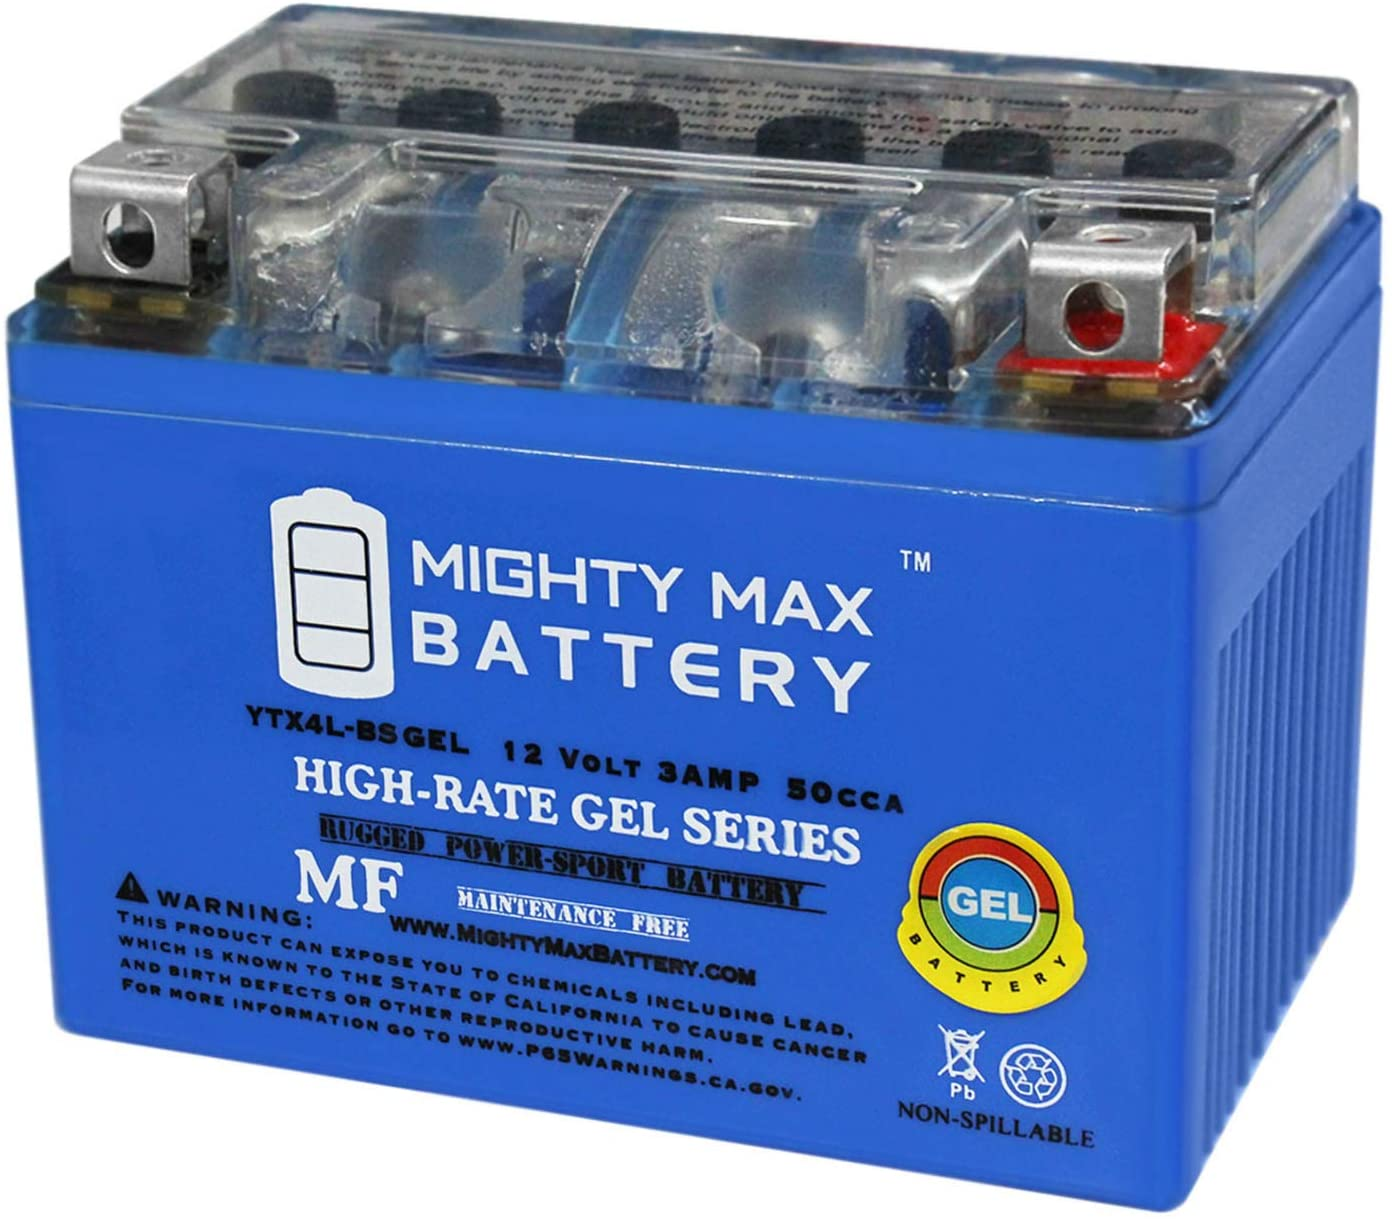 Mighty Max Battery YTX4L-BS 12V 3Ah Gel Replacement for GT4L-BS GB4L-BS Go Kart Scooter Brand Product